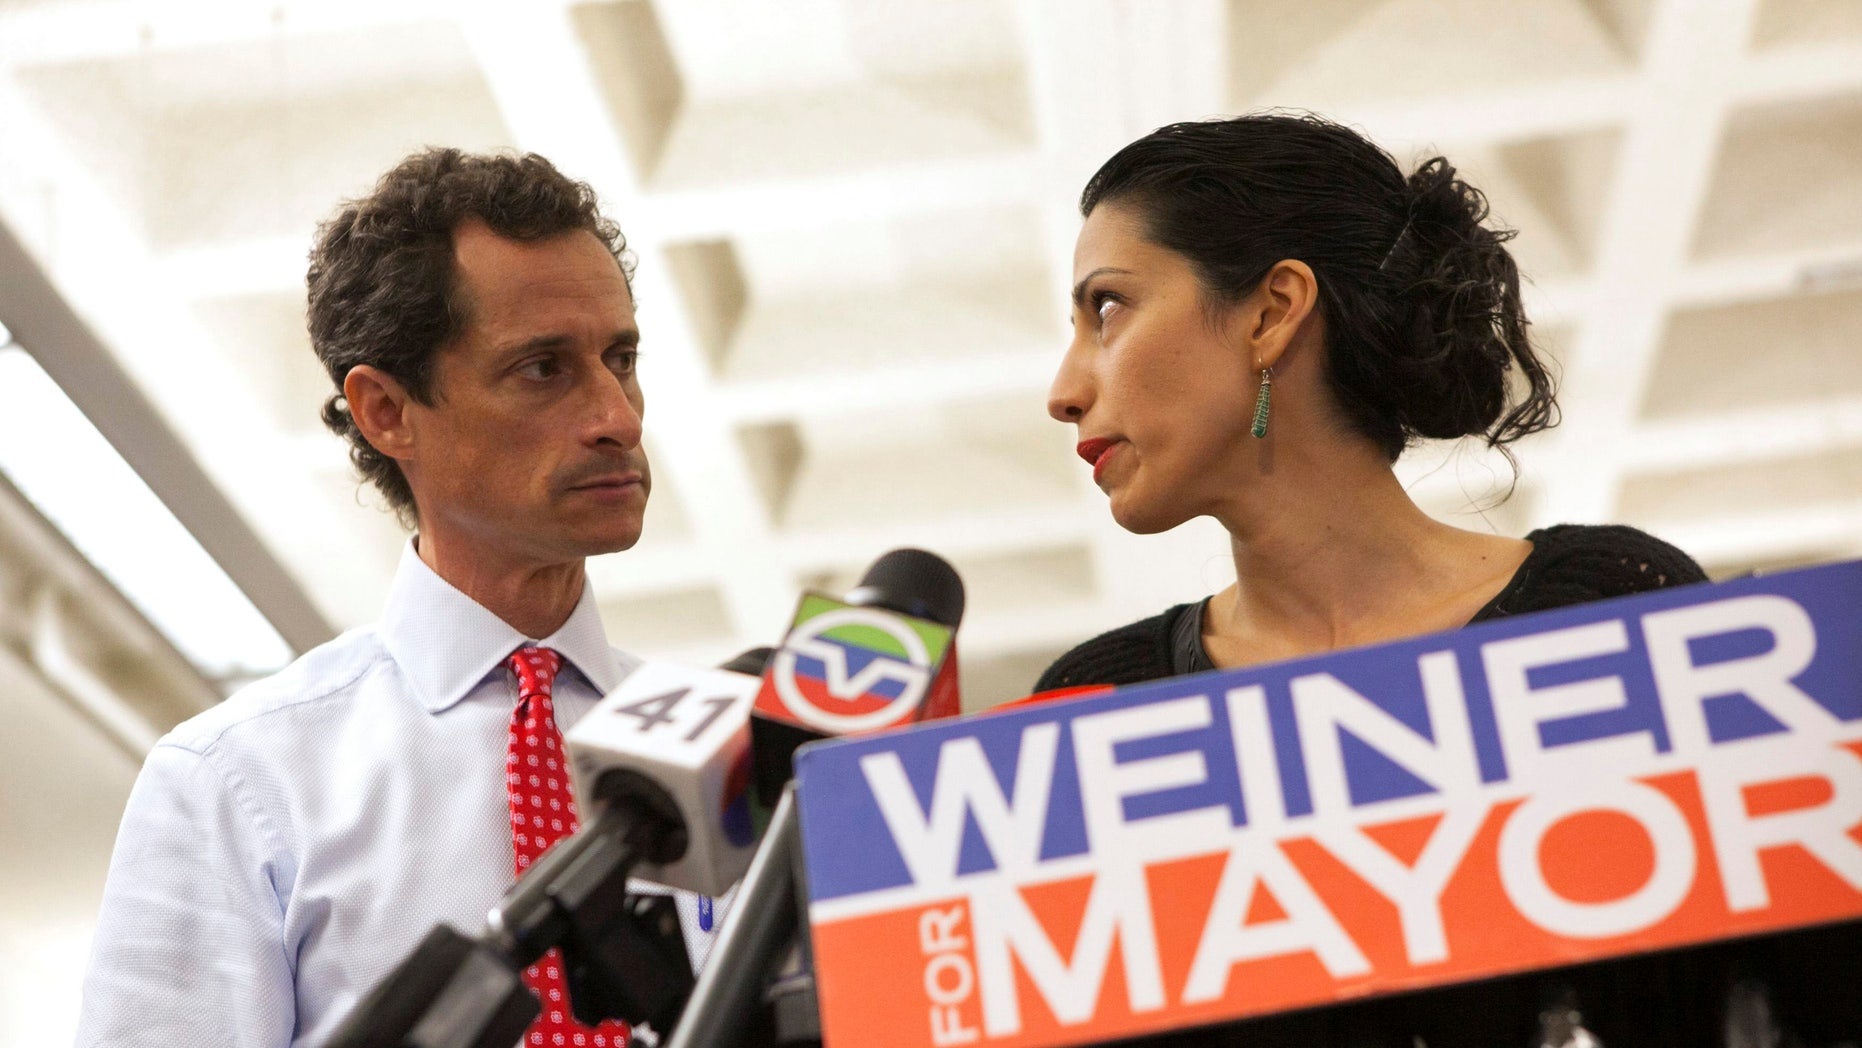 FILE - New York mayoral candidate Anthony Weiner and his wife Huma Abedin attend a news conference in New York, July 23, 2013.